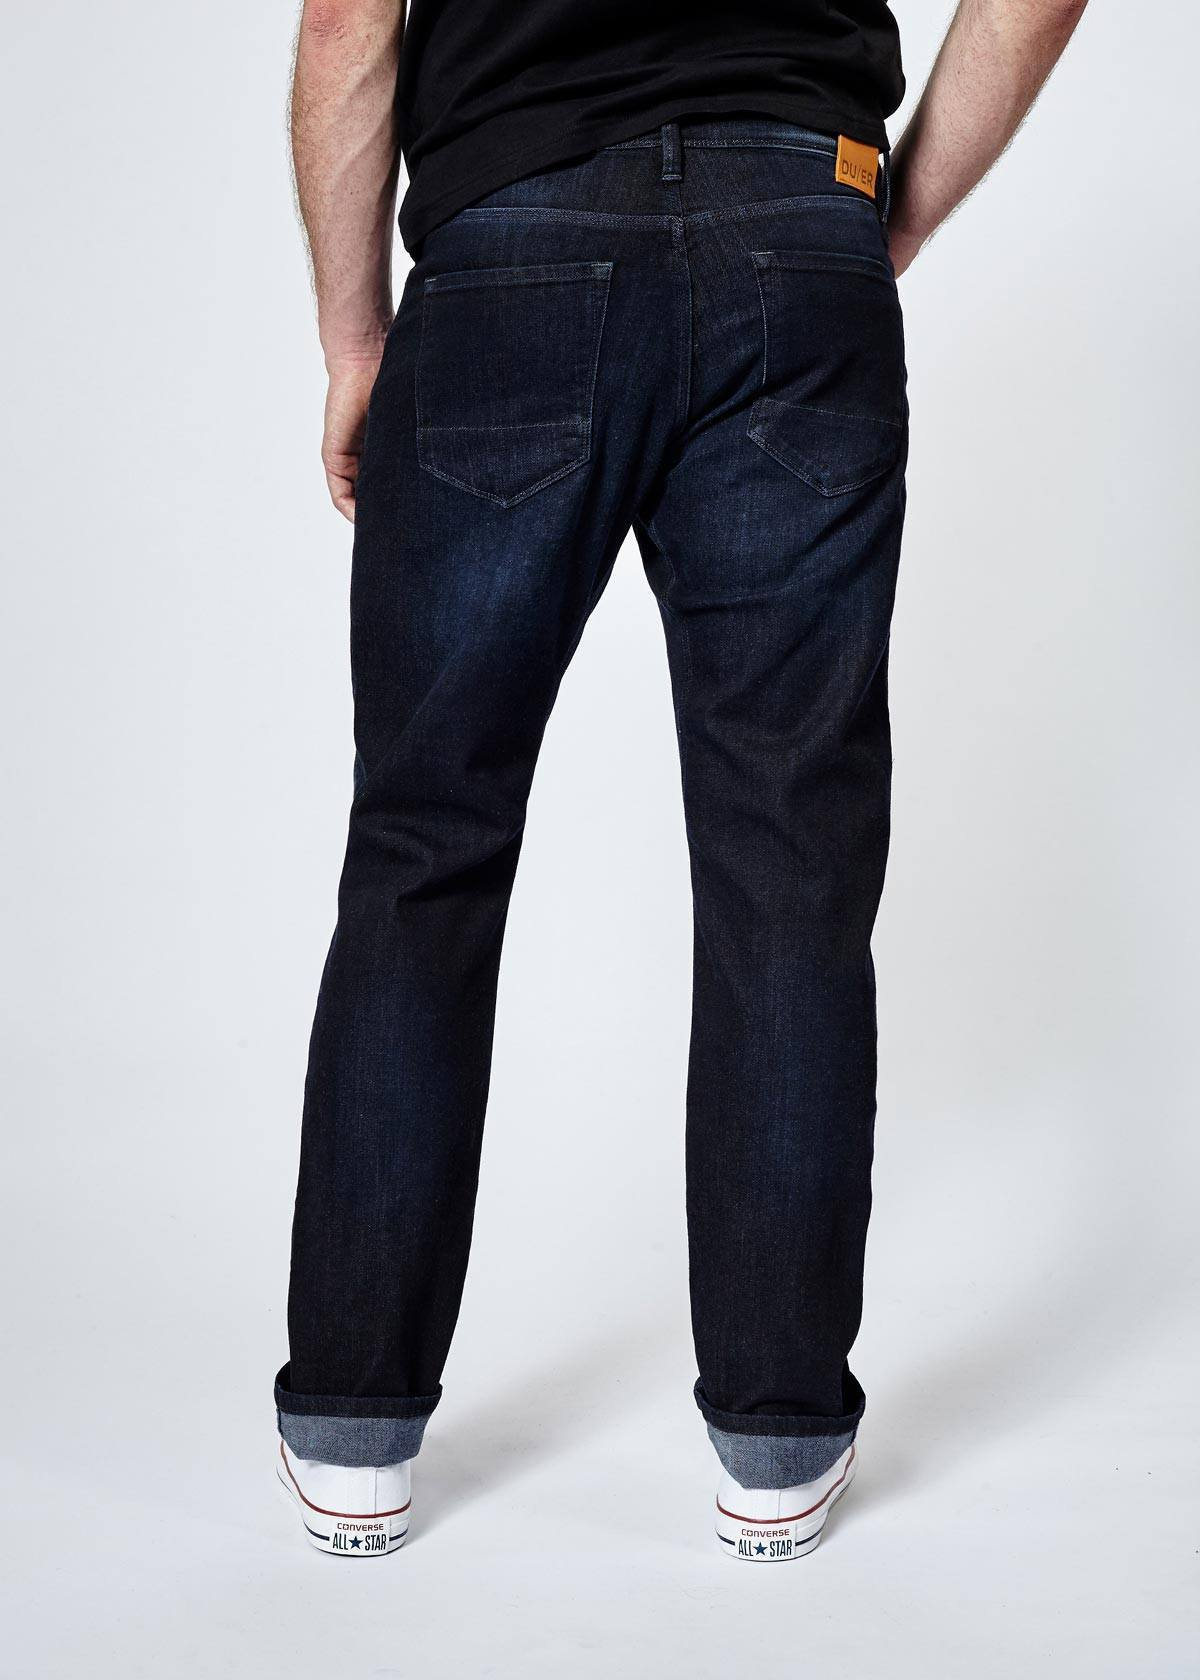 Performance Denim Relaxed - After Dark